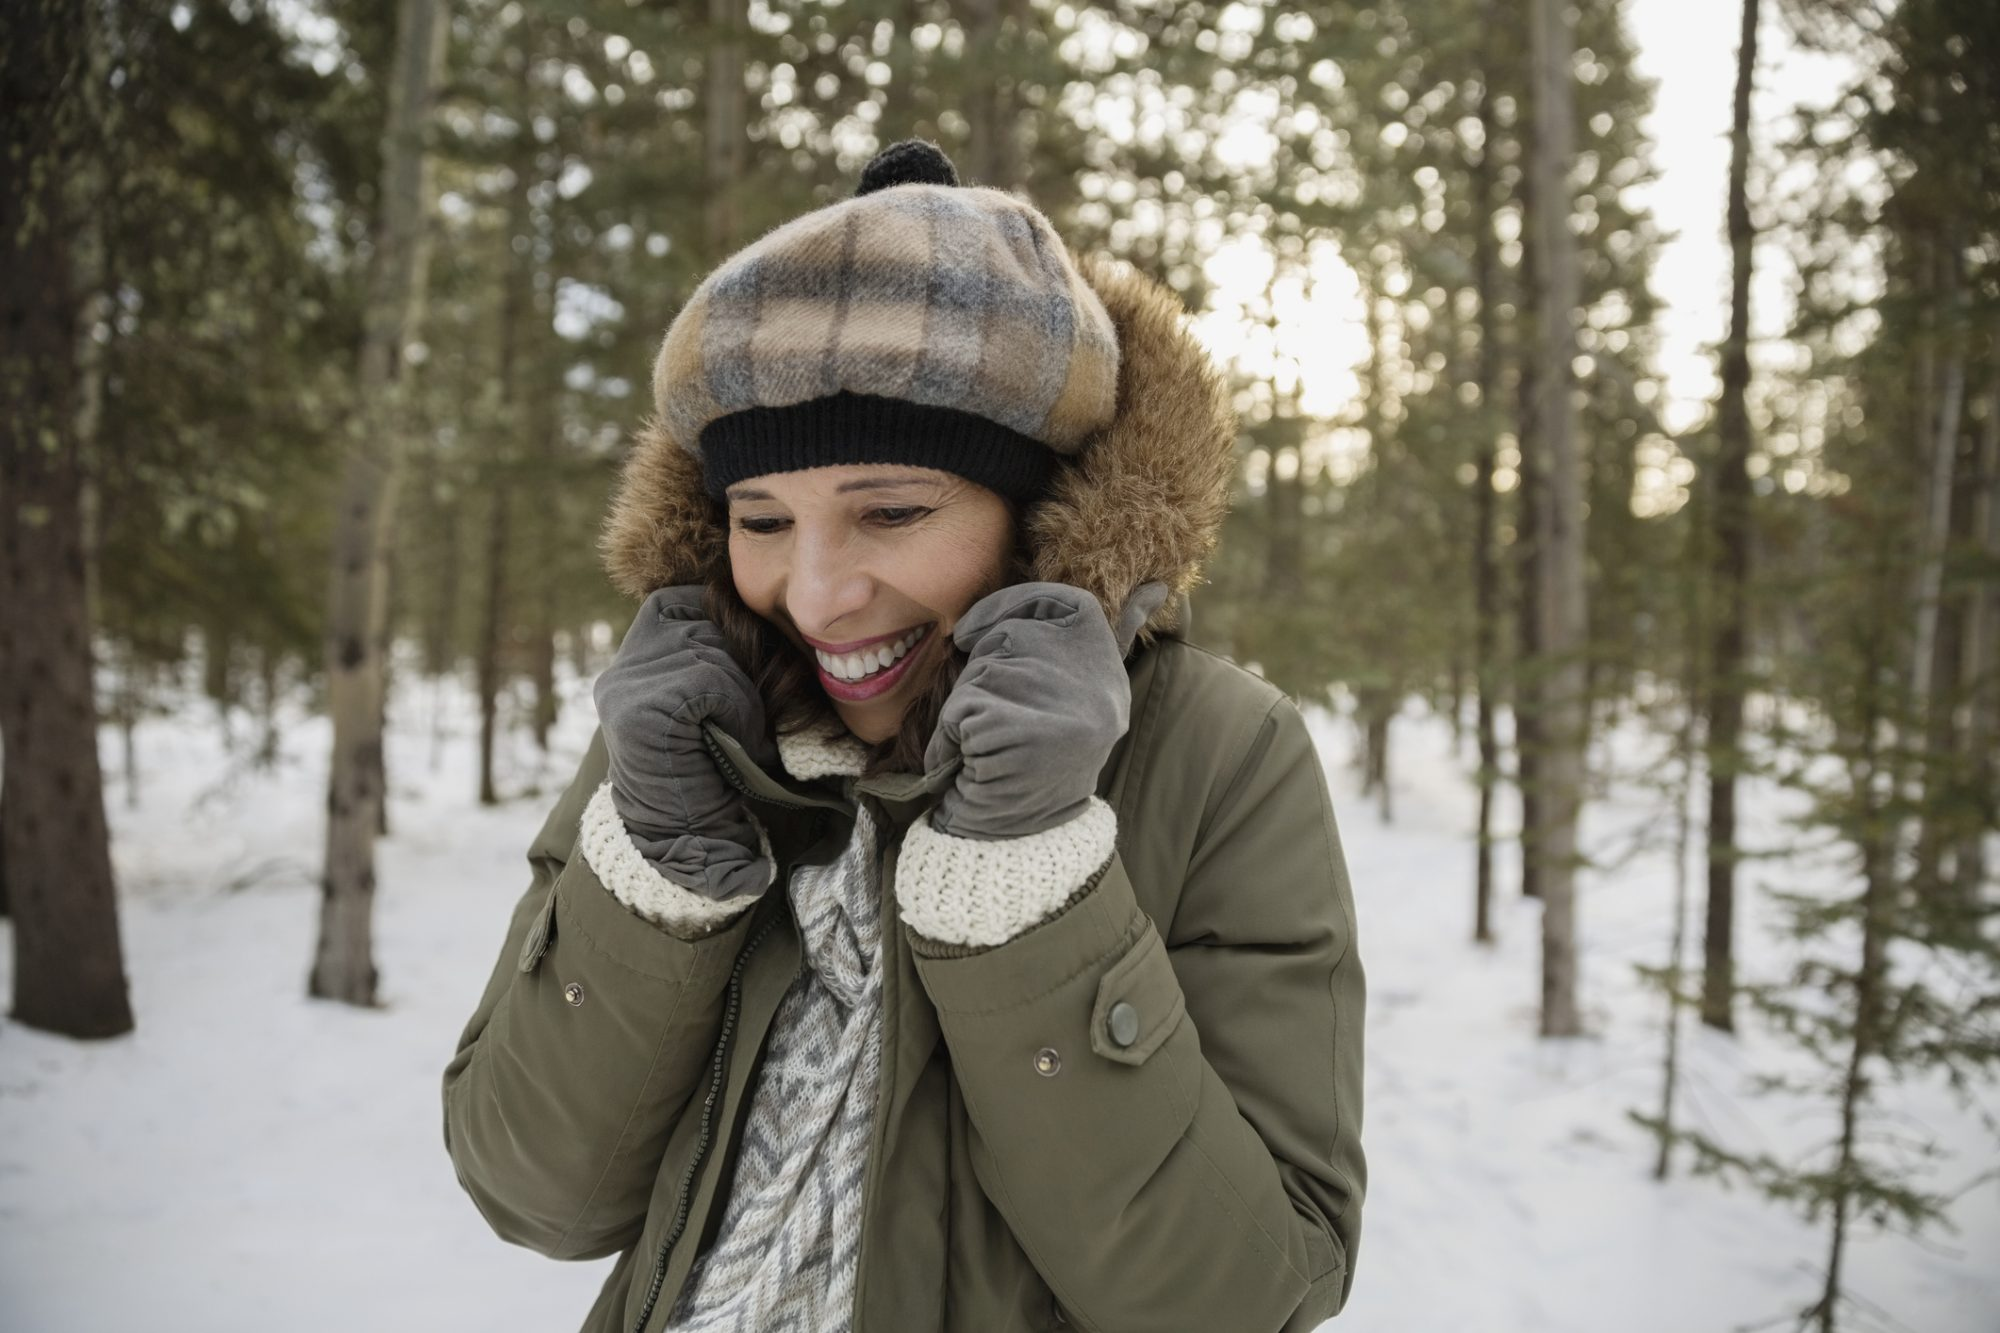 Woman wearing winter clothing outdoors in snow